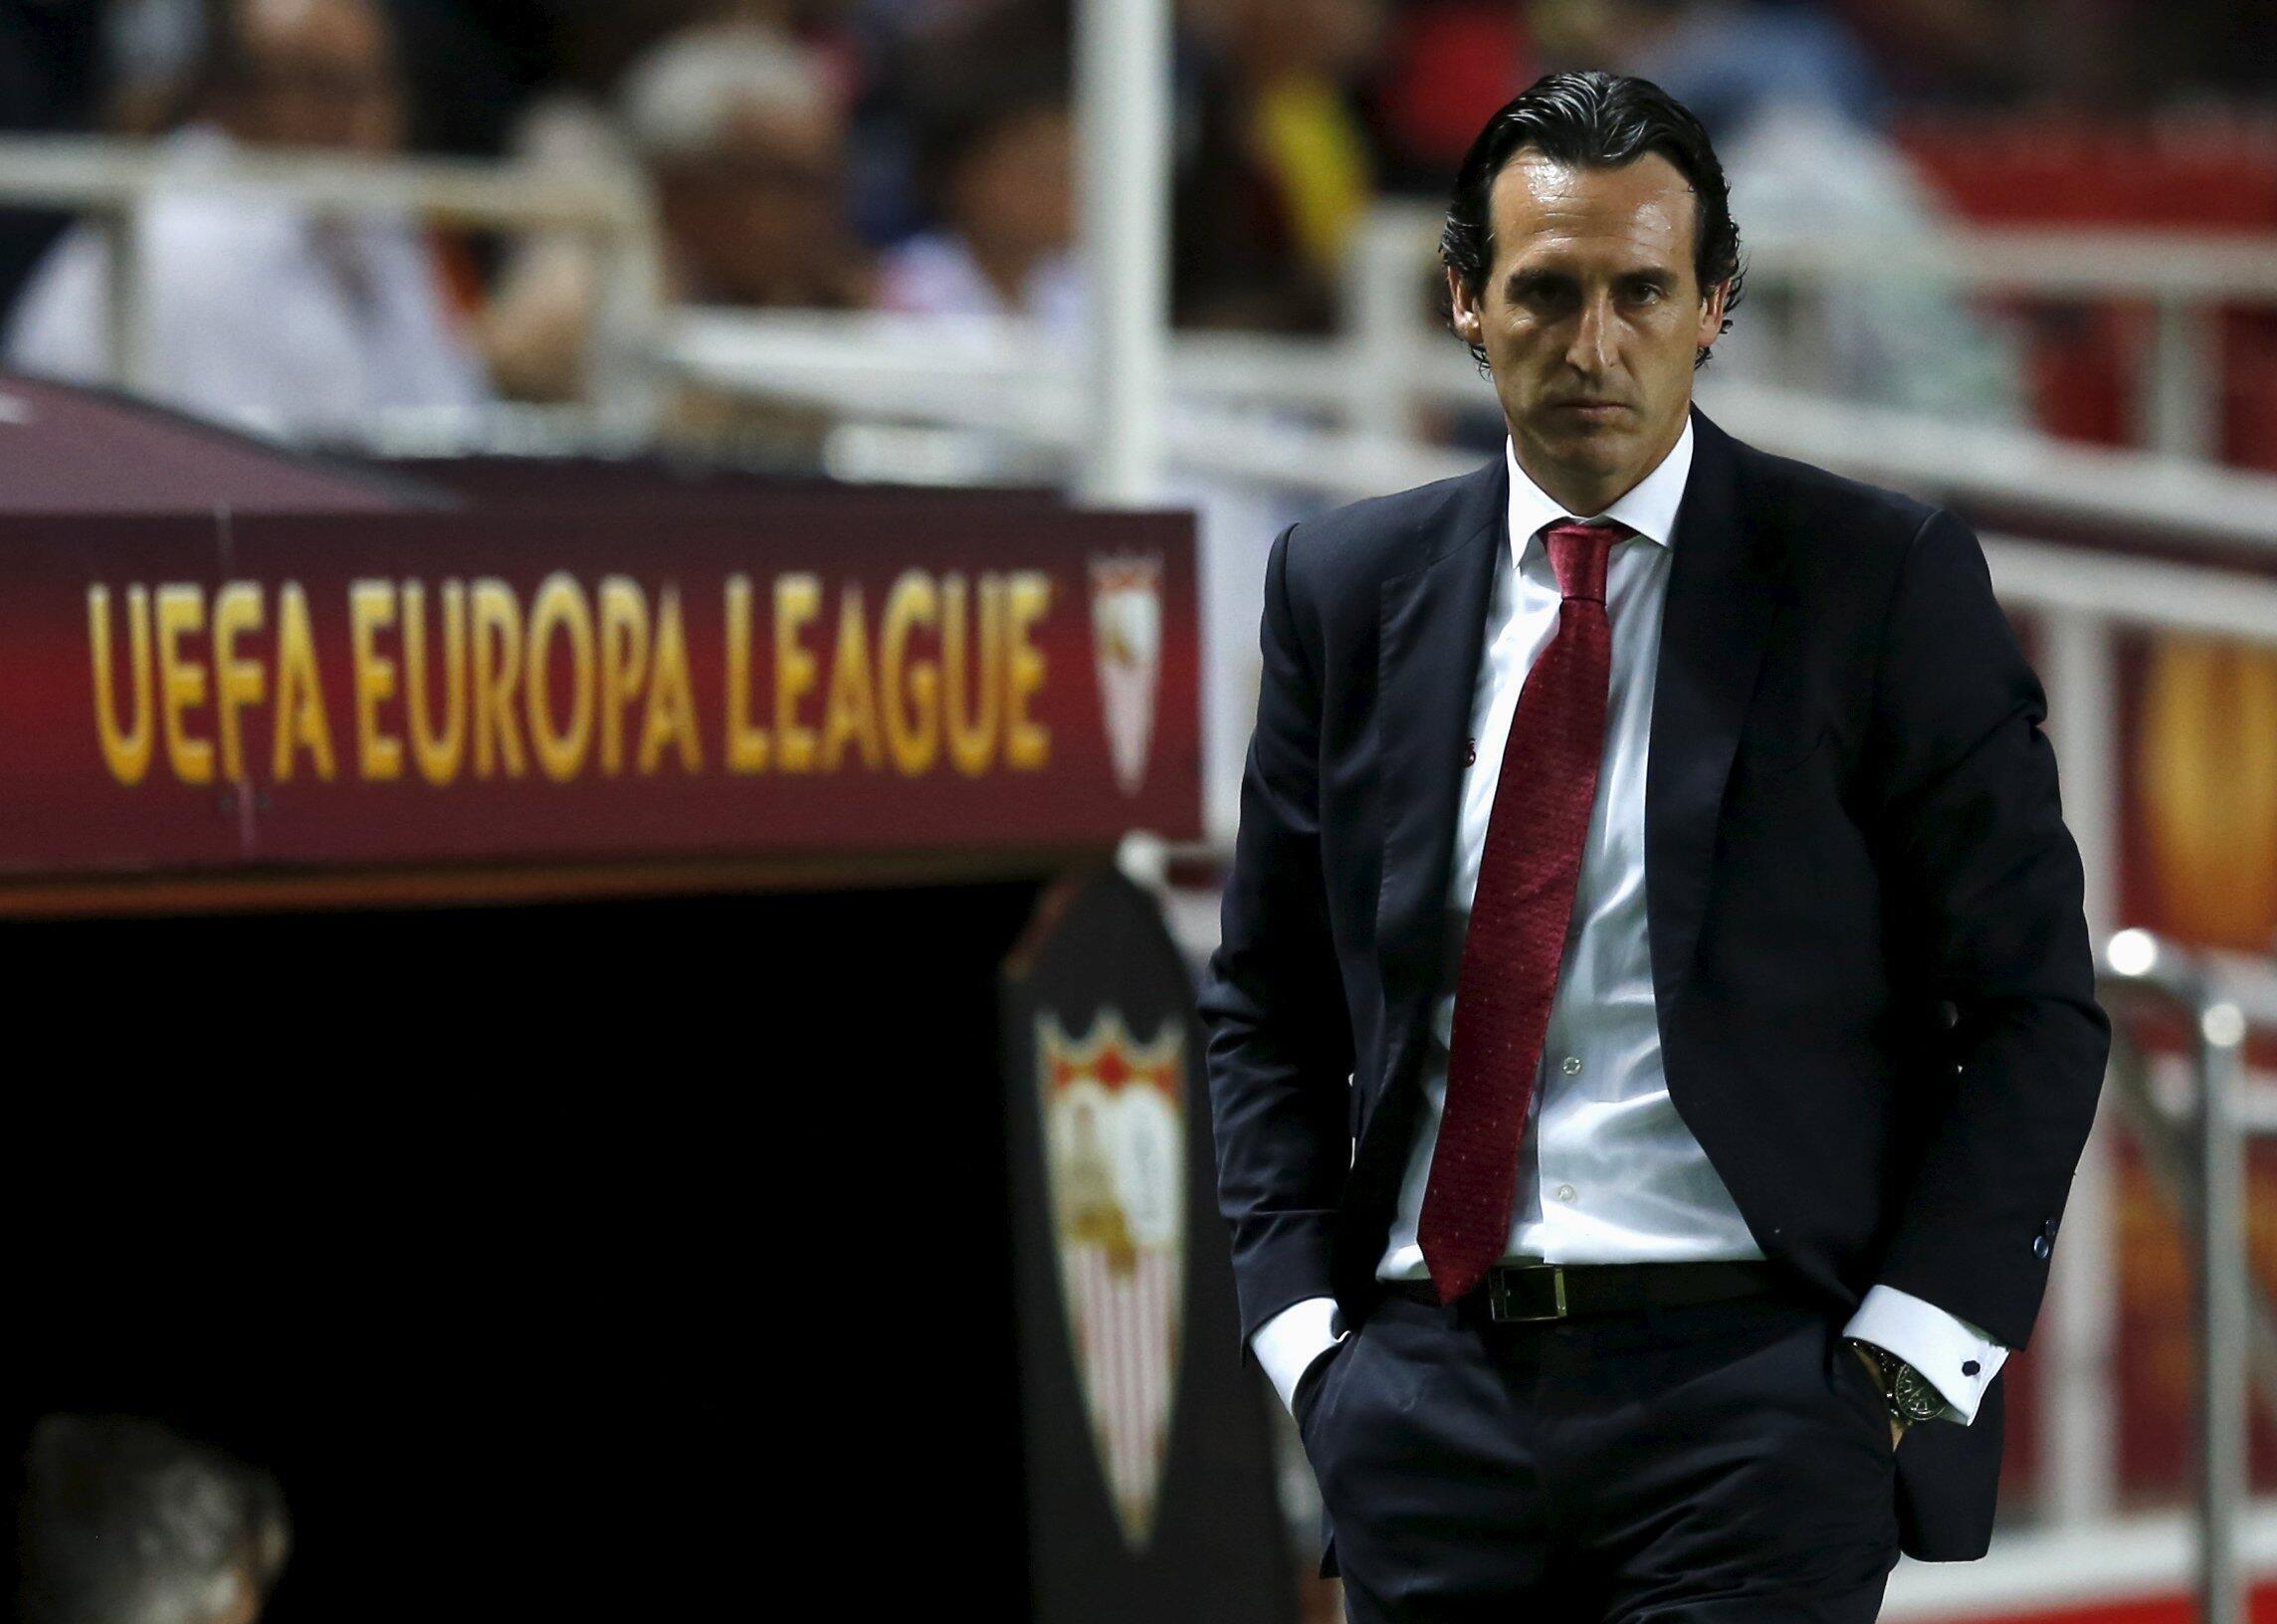 Unai Emery's Sevilla side will attempt to retain its Europa League crown against Dnipro